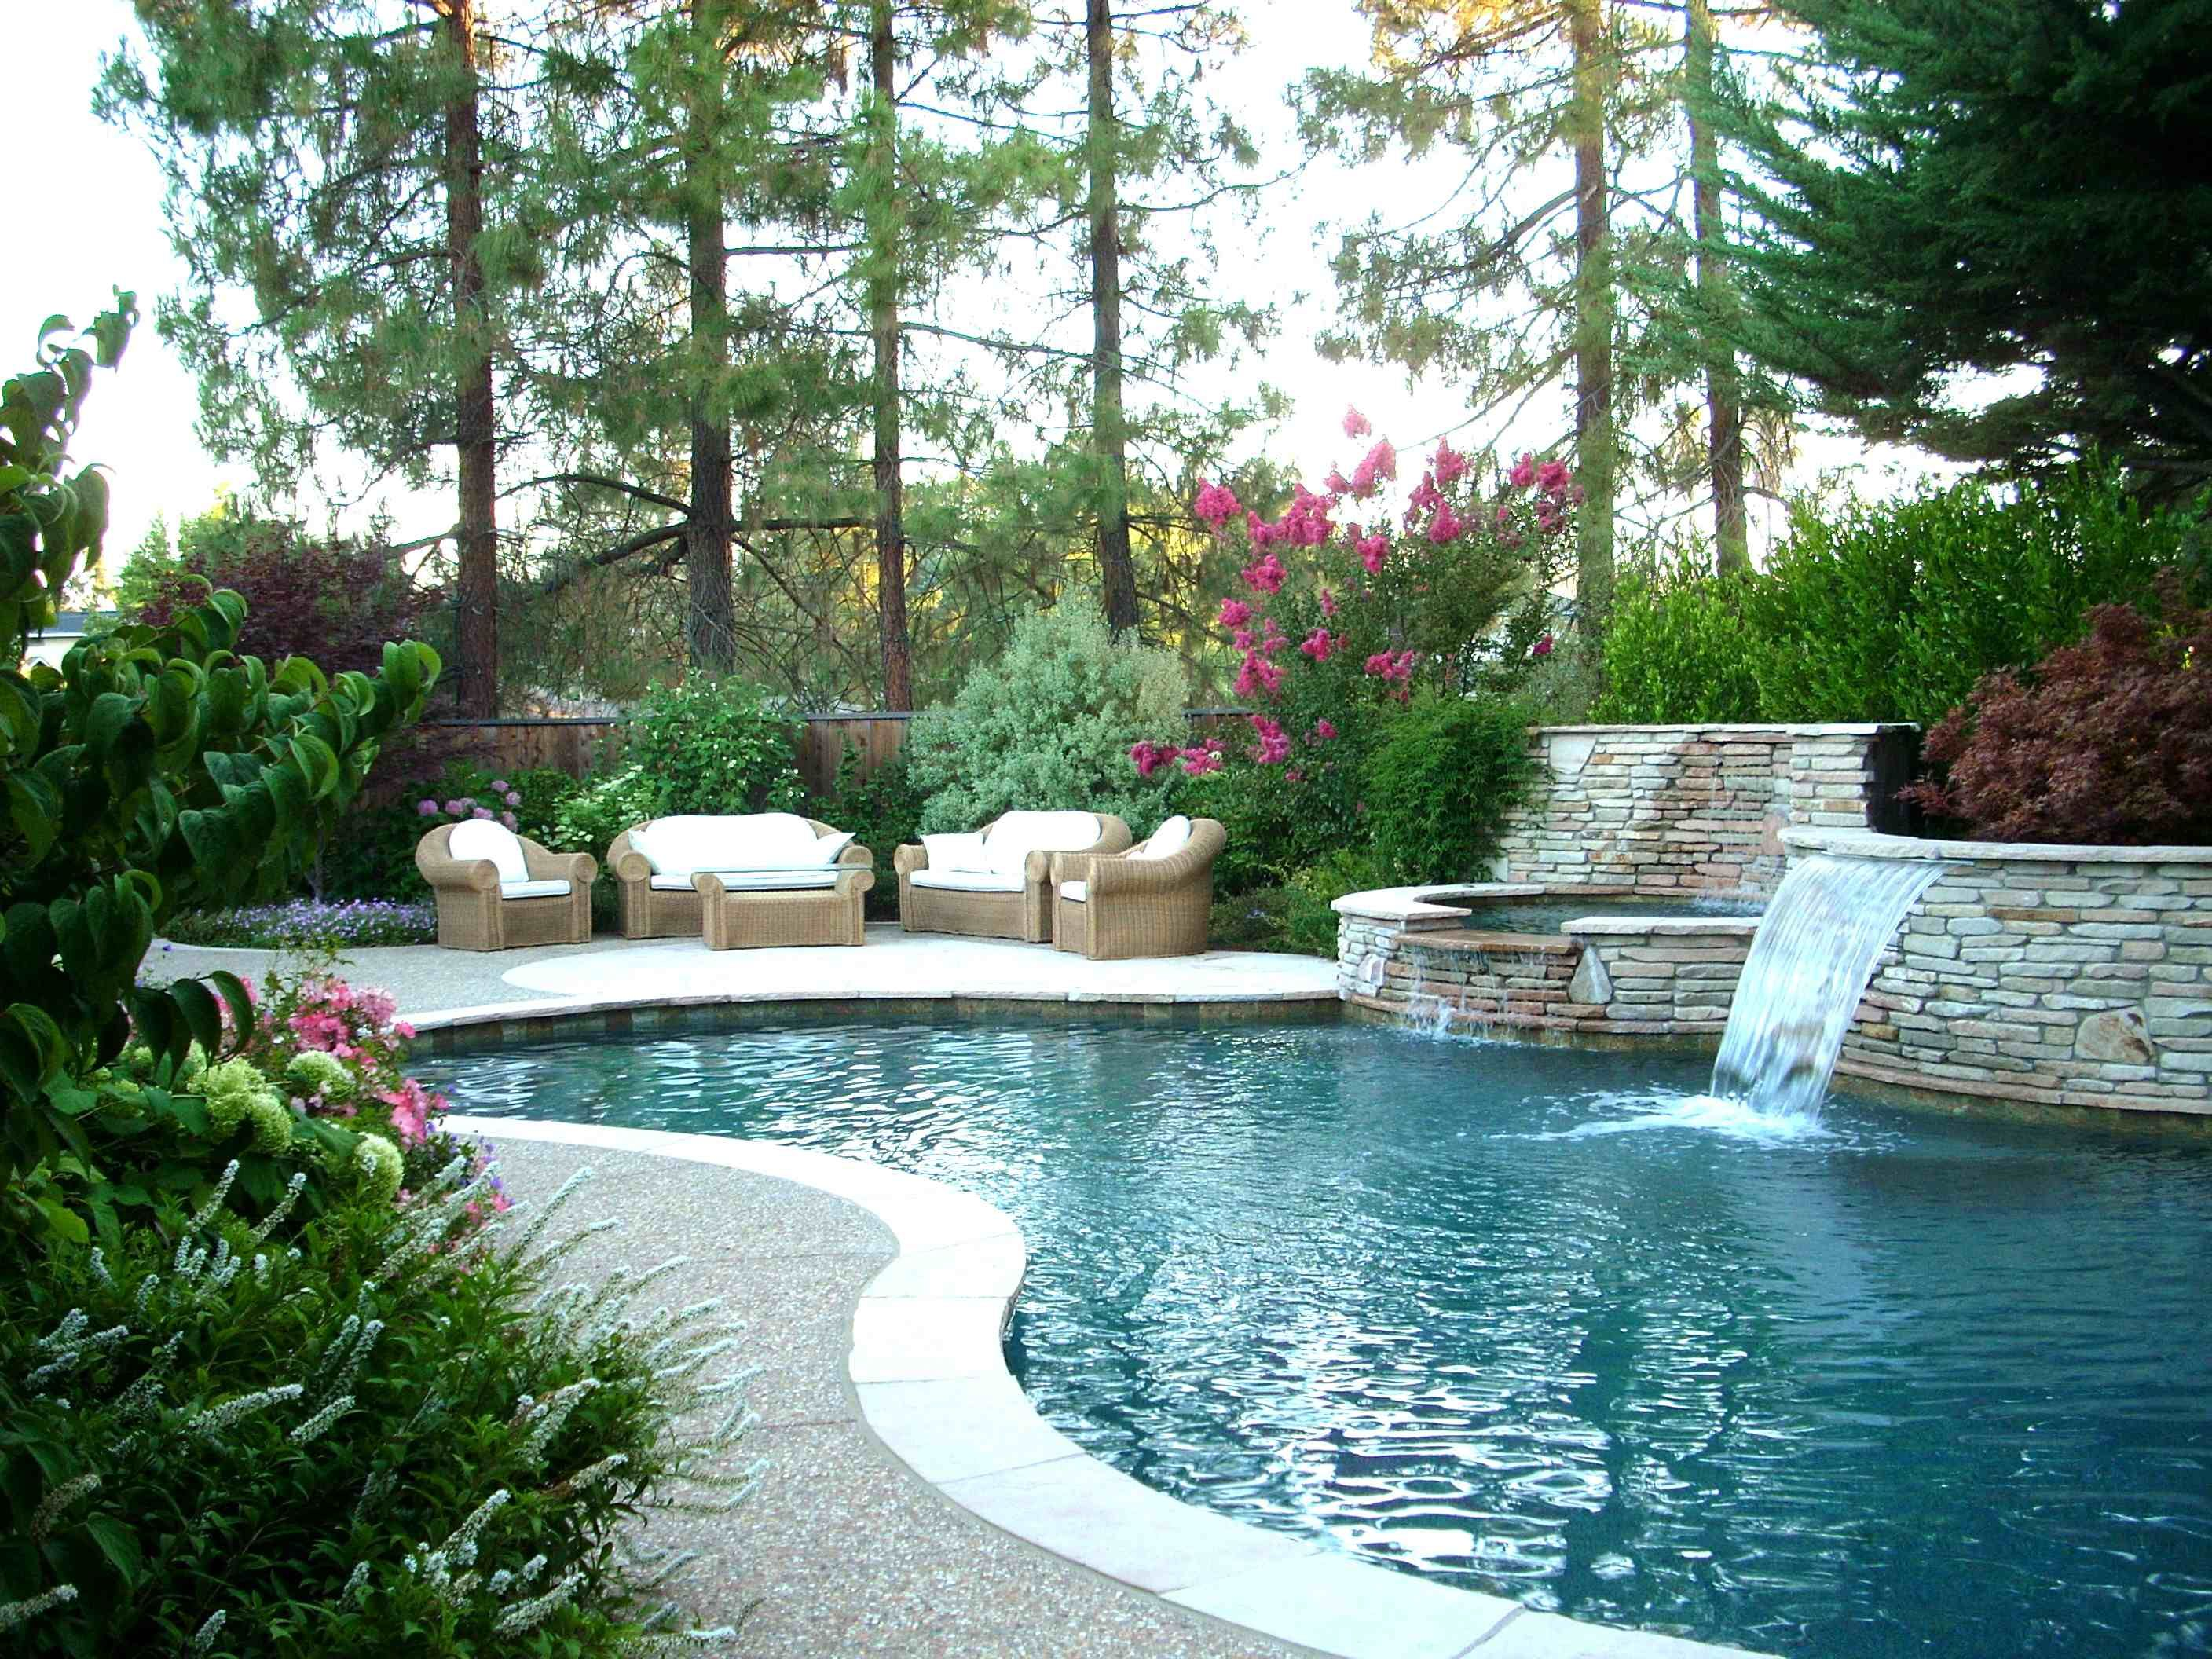 Landscaped pool pictures landscape design ideas for for Garden design ideas photos